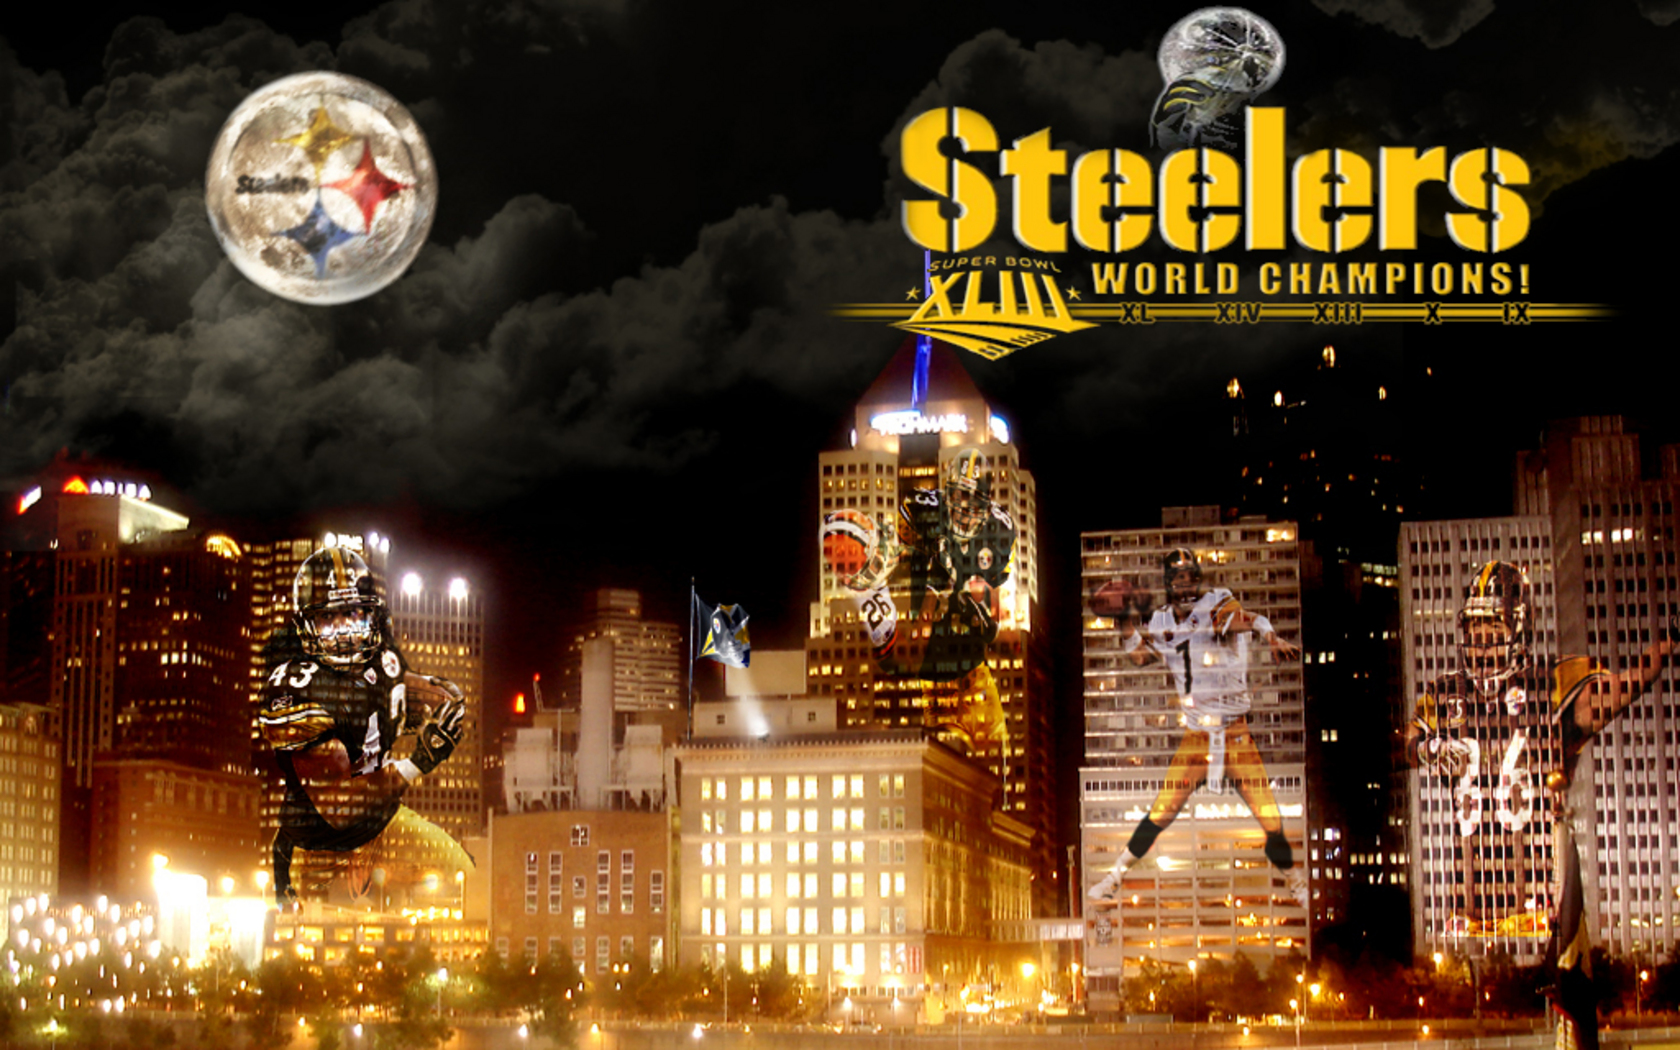 Steelers desktop background Pittsburgh Steelers wallpapers 1680x1050